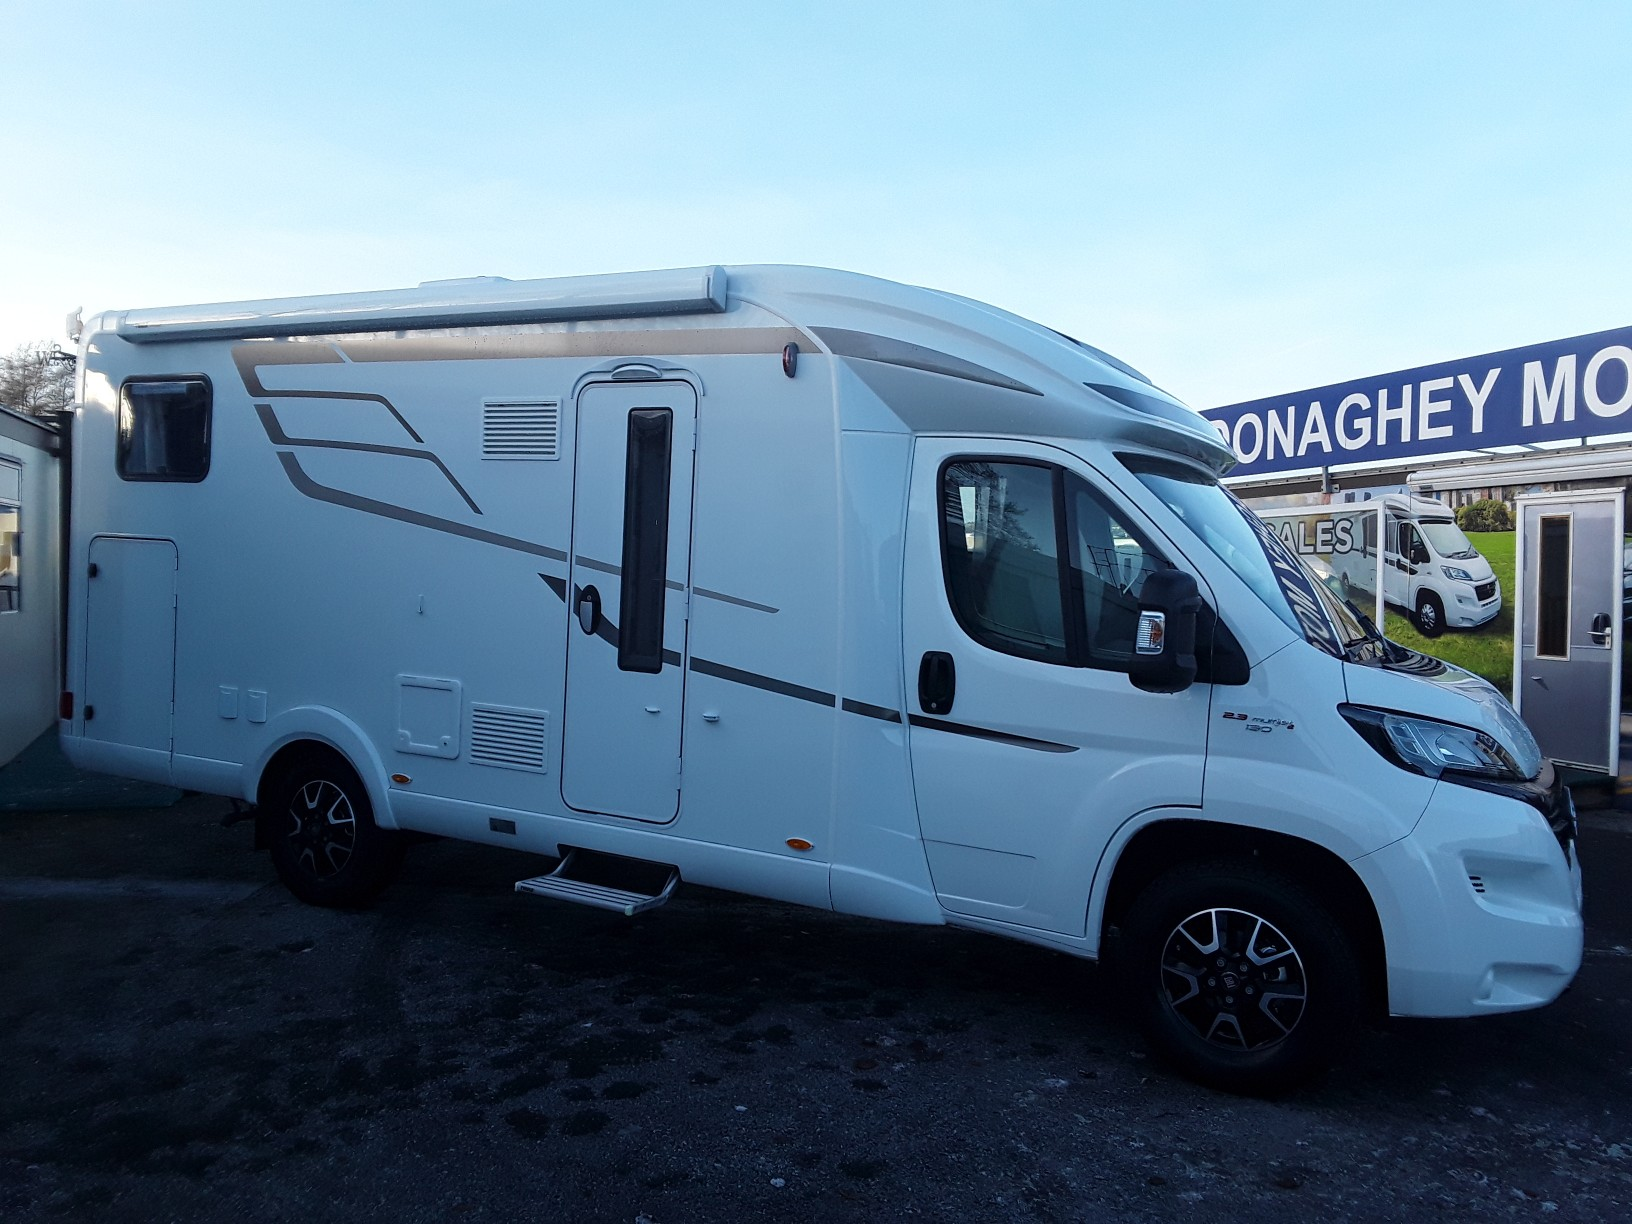 Accessories | Donaghey Motorhomes